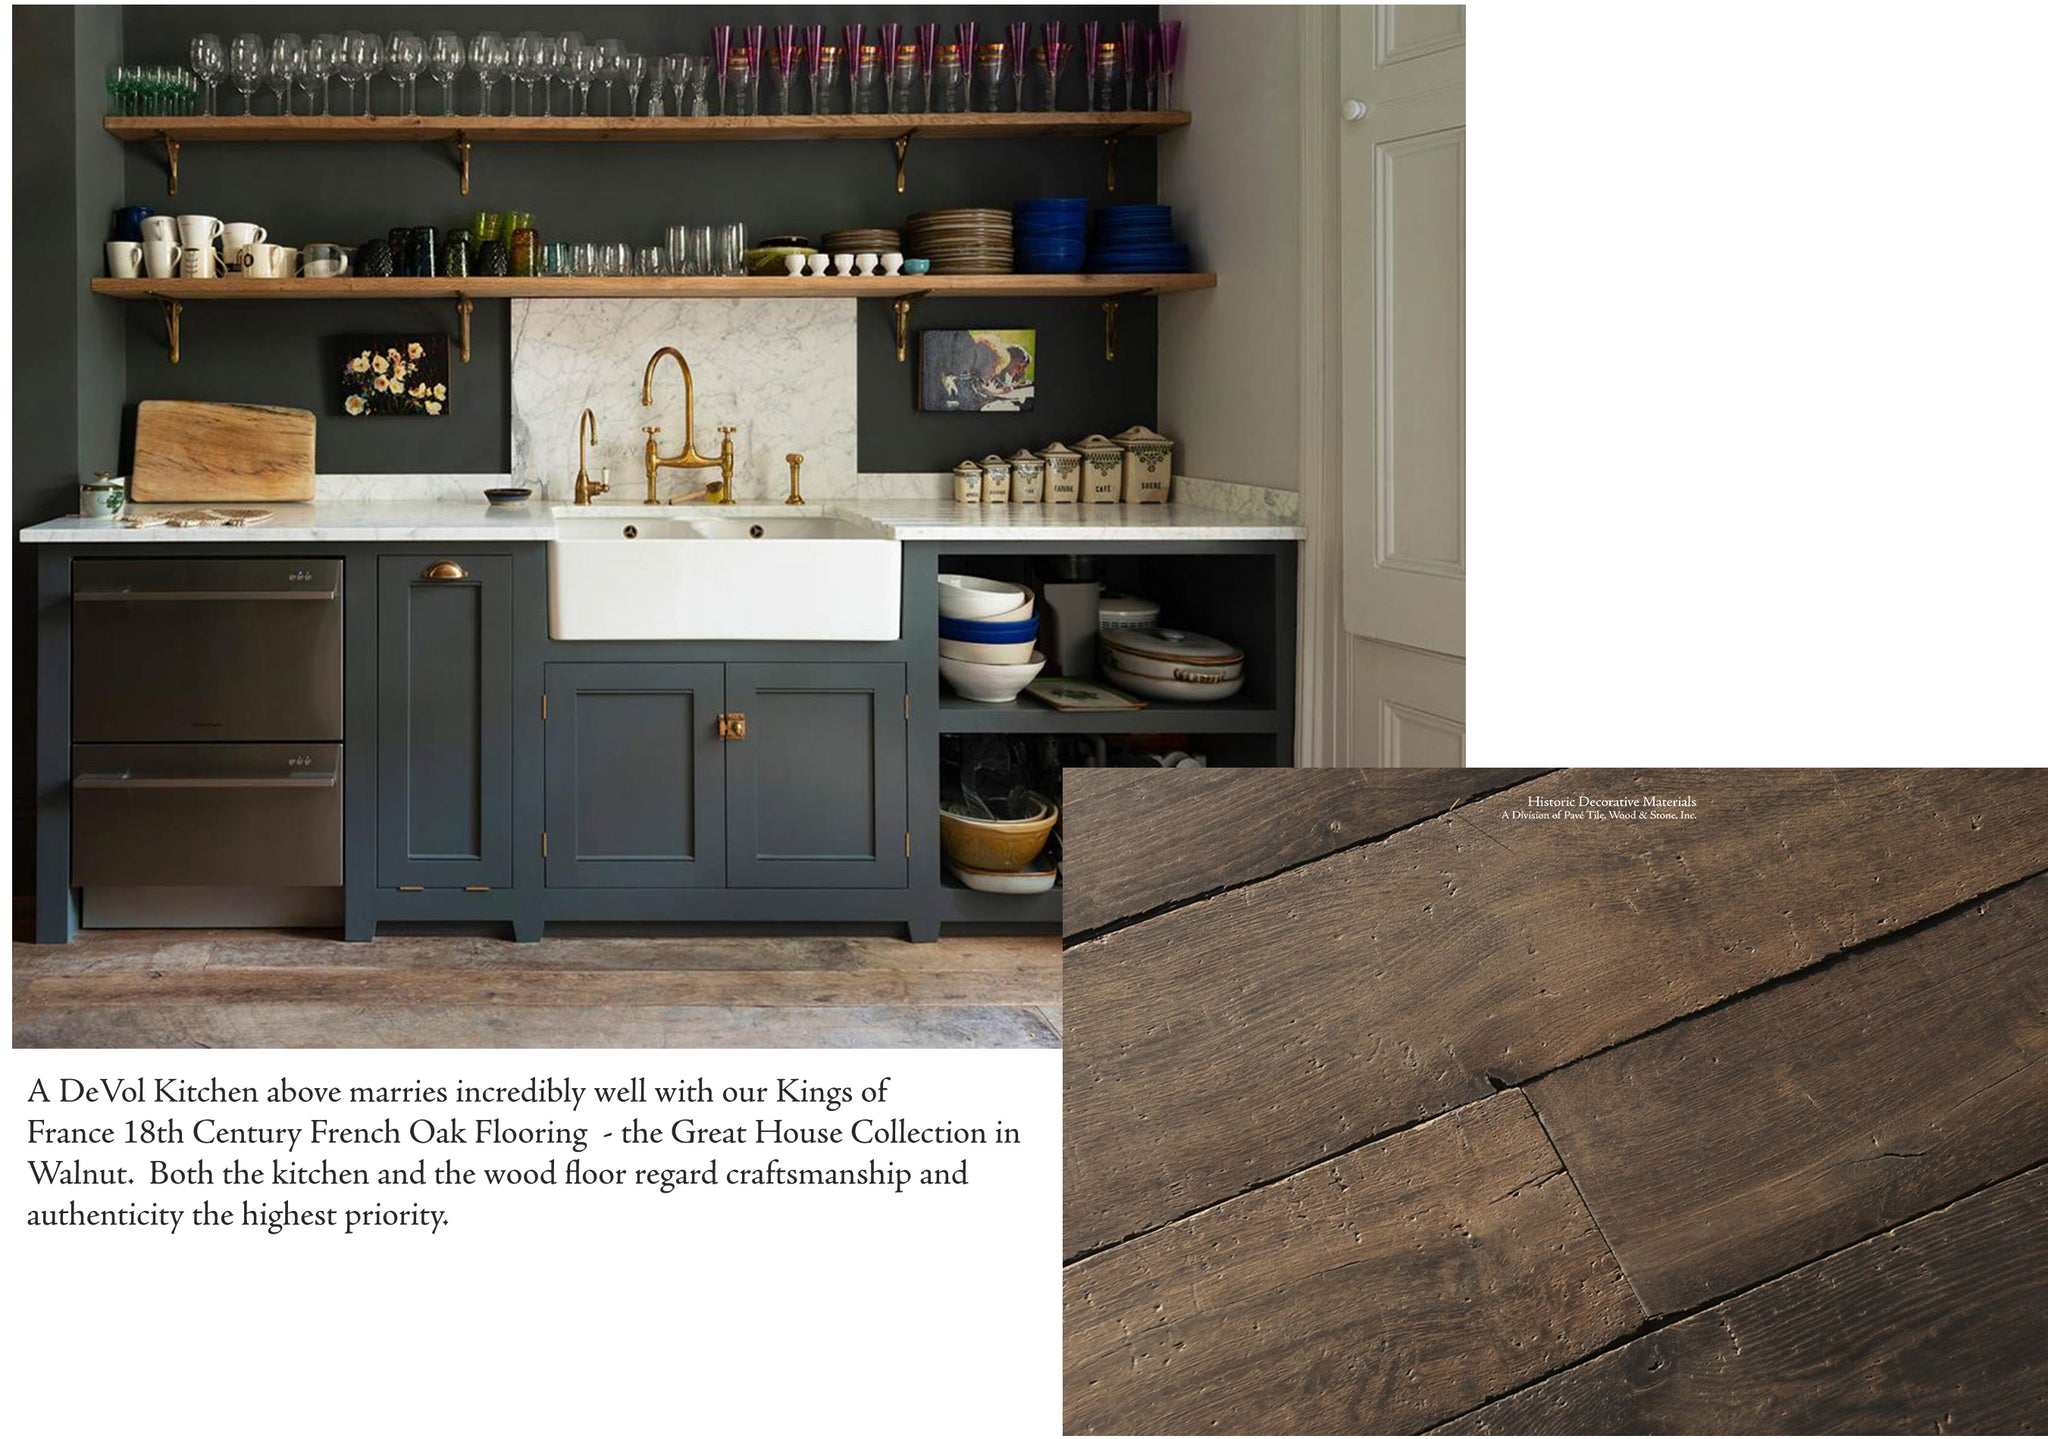 The Classic English Kitchen and the Shaker Style Kitchens like those of DeVol Kitchens and Plain English Kitchens marries so well with the Kings of France 18th Century French Oak Flooring